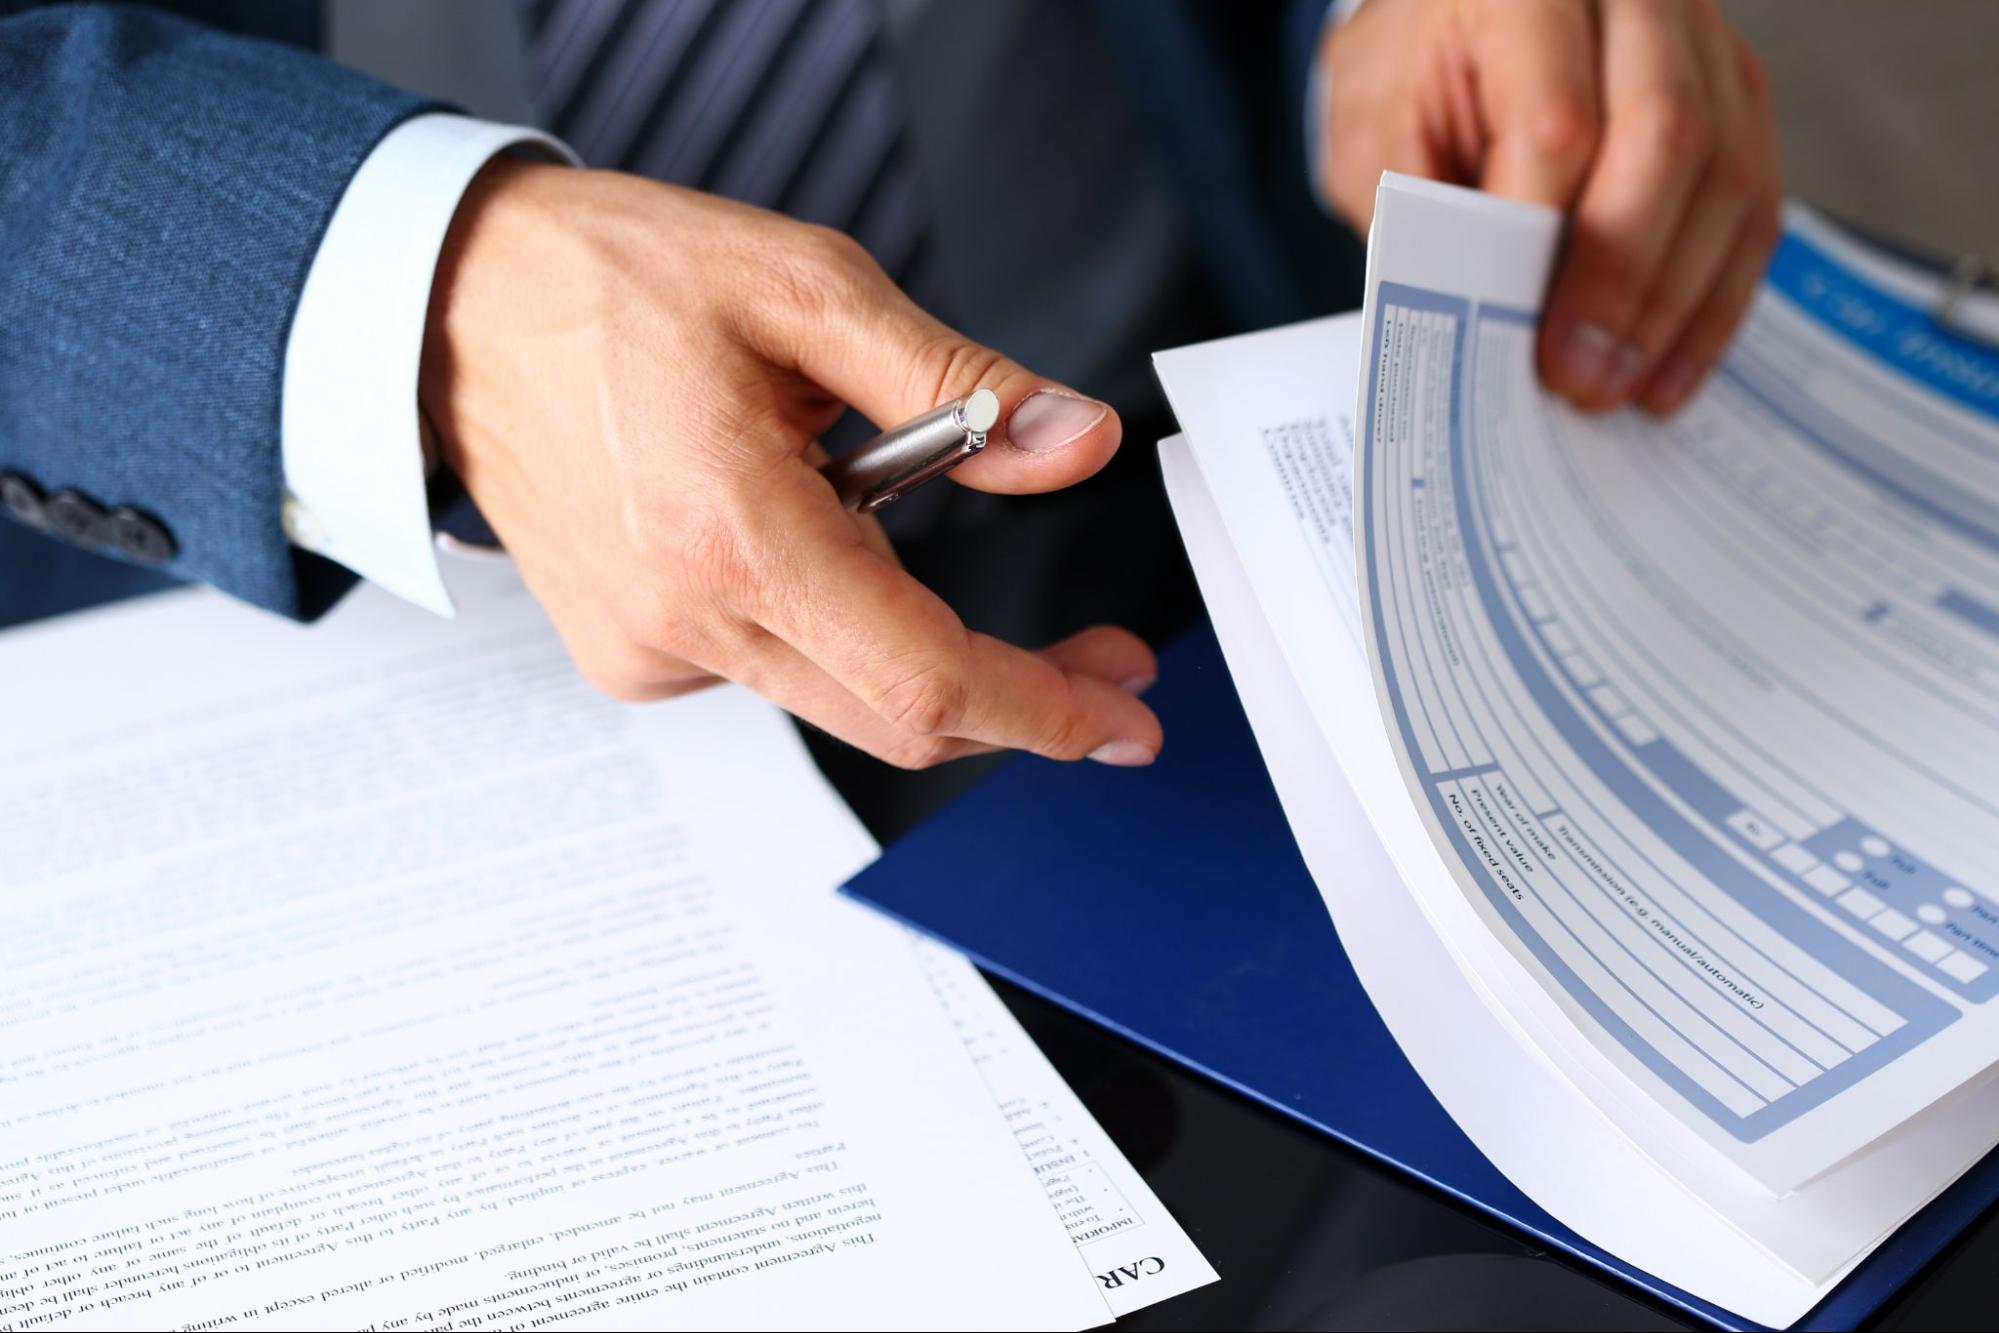 A closeup of a commercial property insurer's hands as he flips through insurance papers